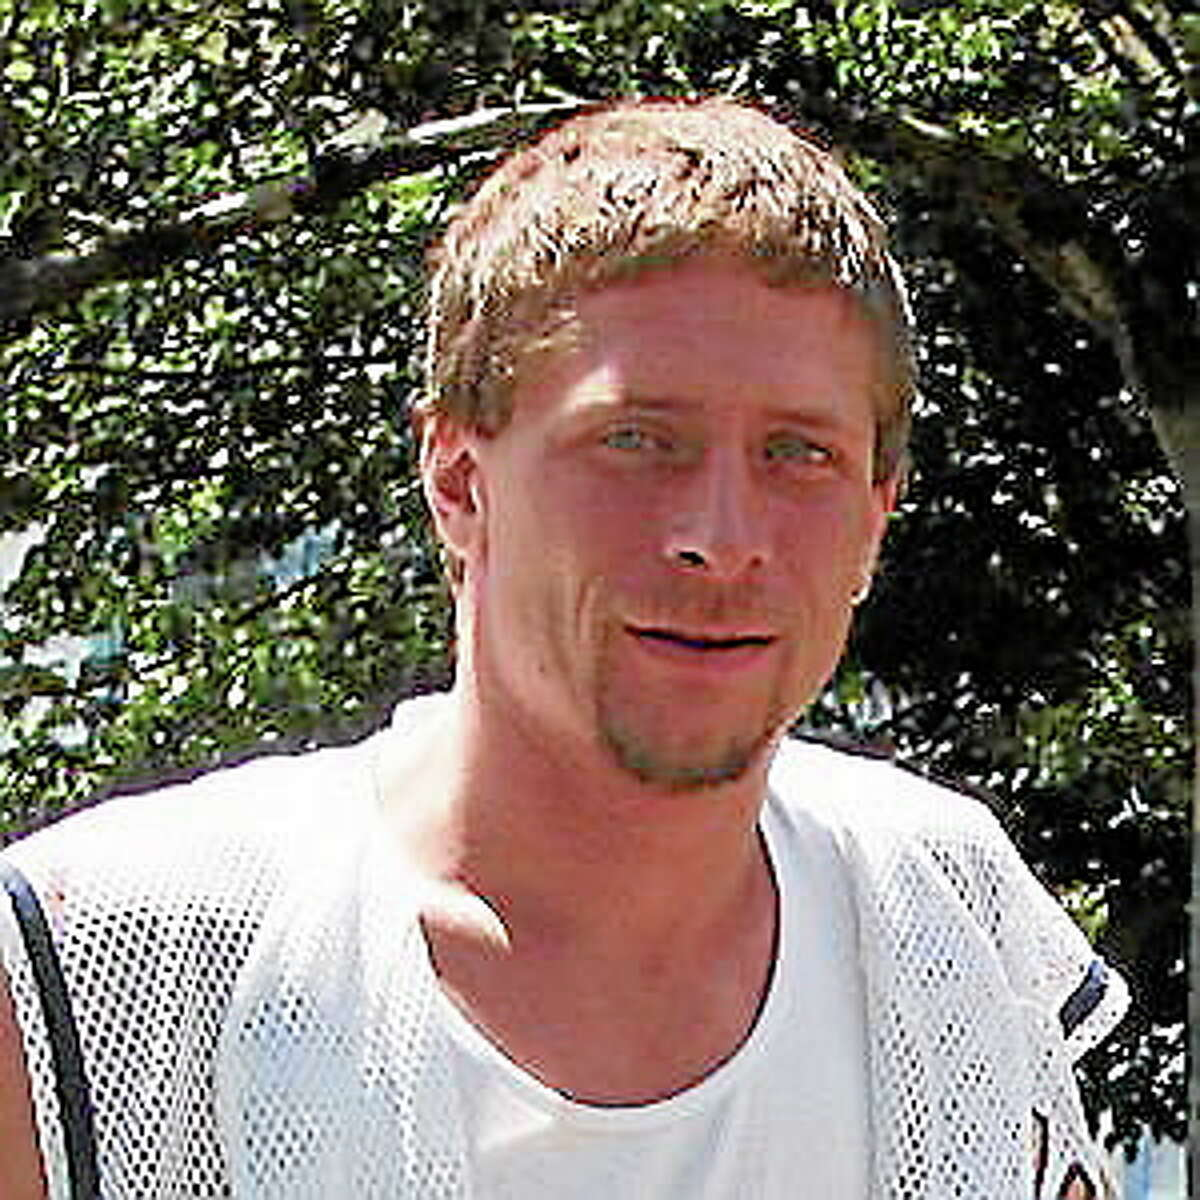 Edward Andrew Thompson was killed in New Haven in 2011